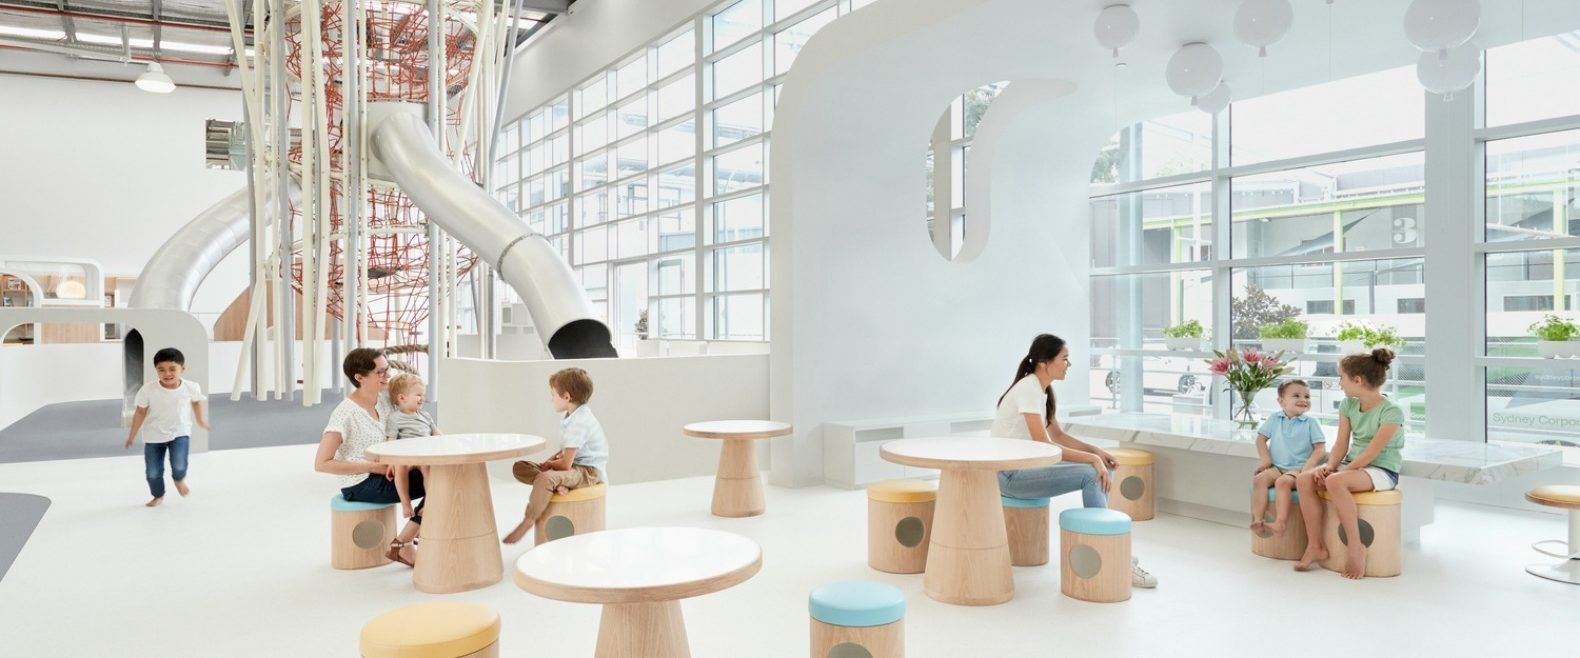 Pal Design's Nubo Maybe Be The World's Coolest Kindergarten